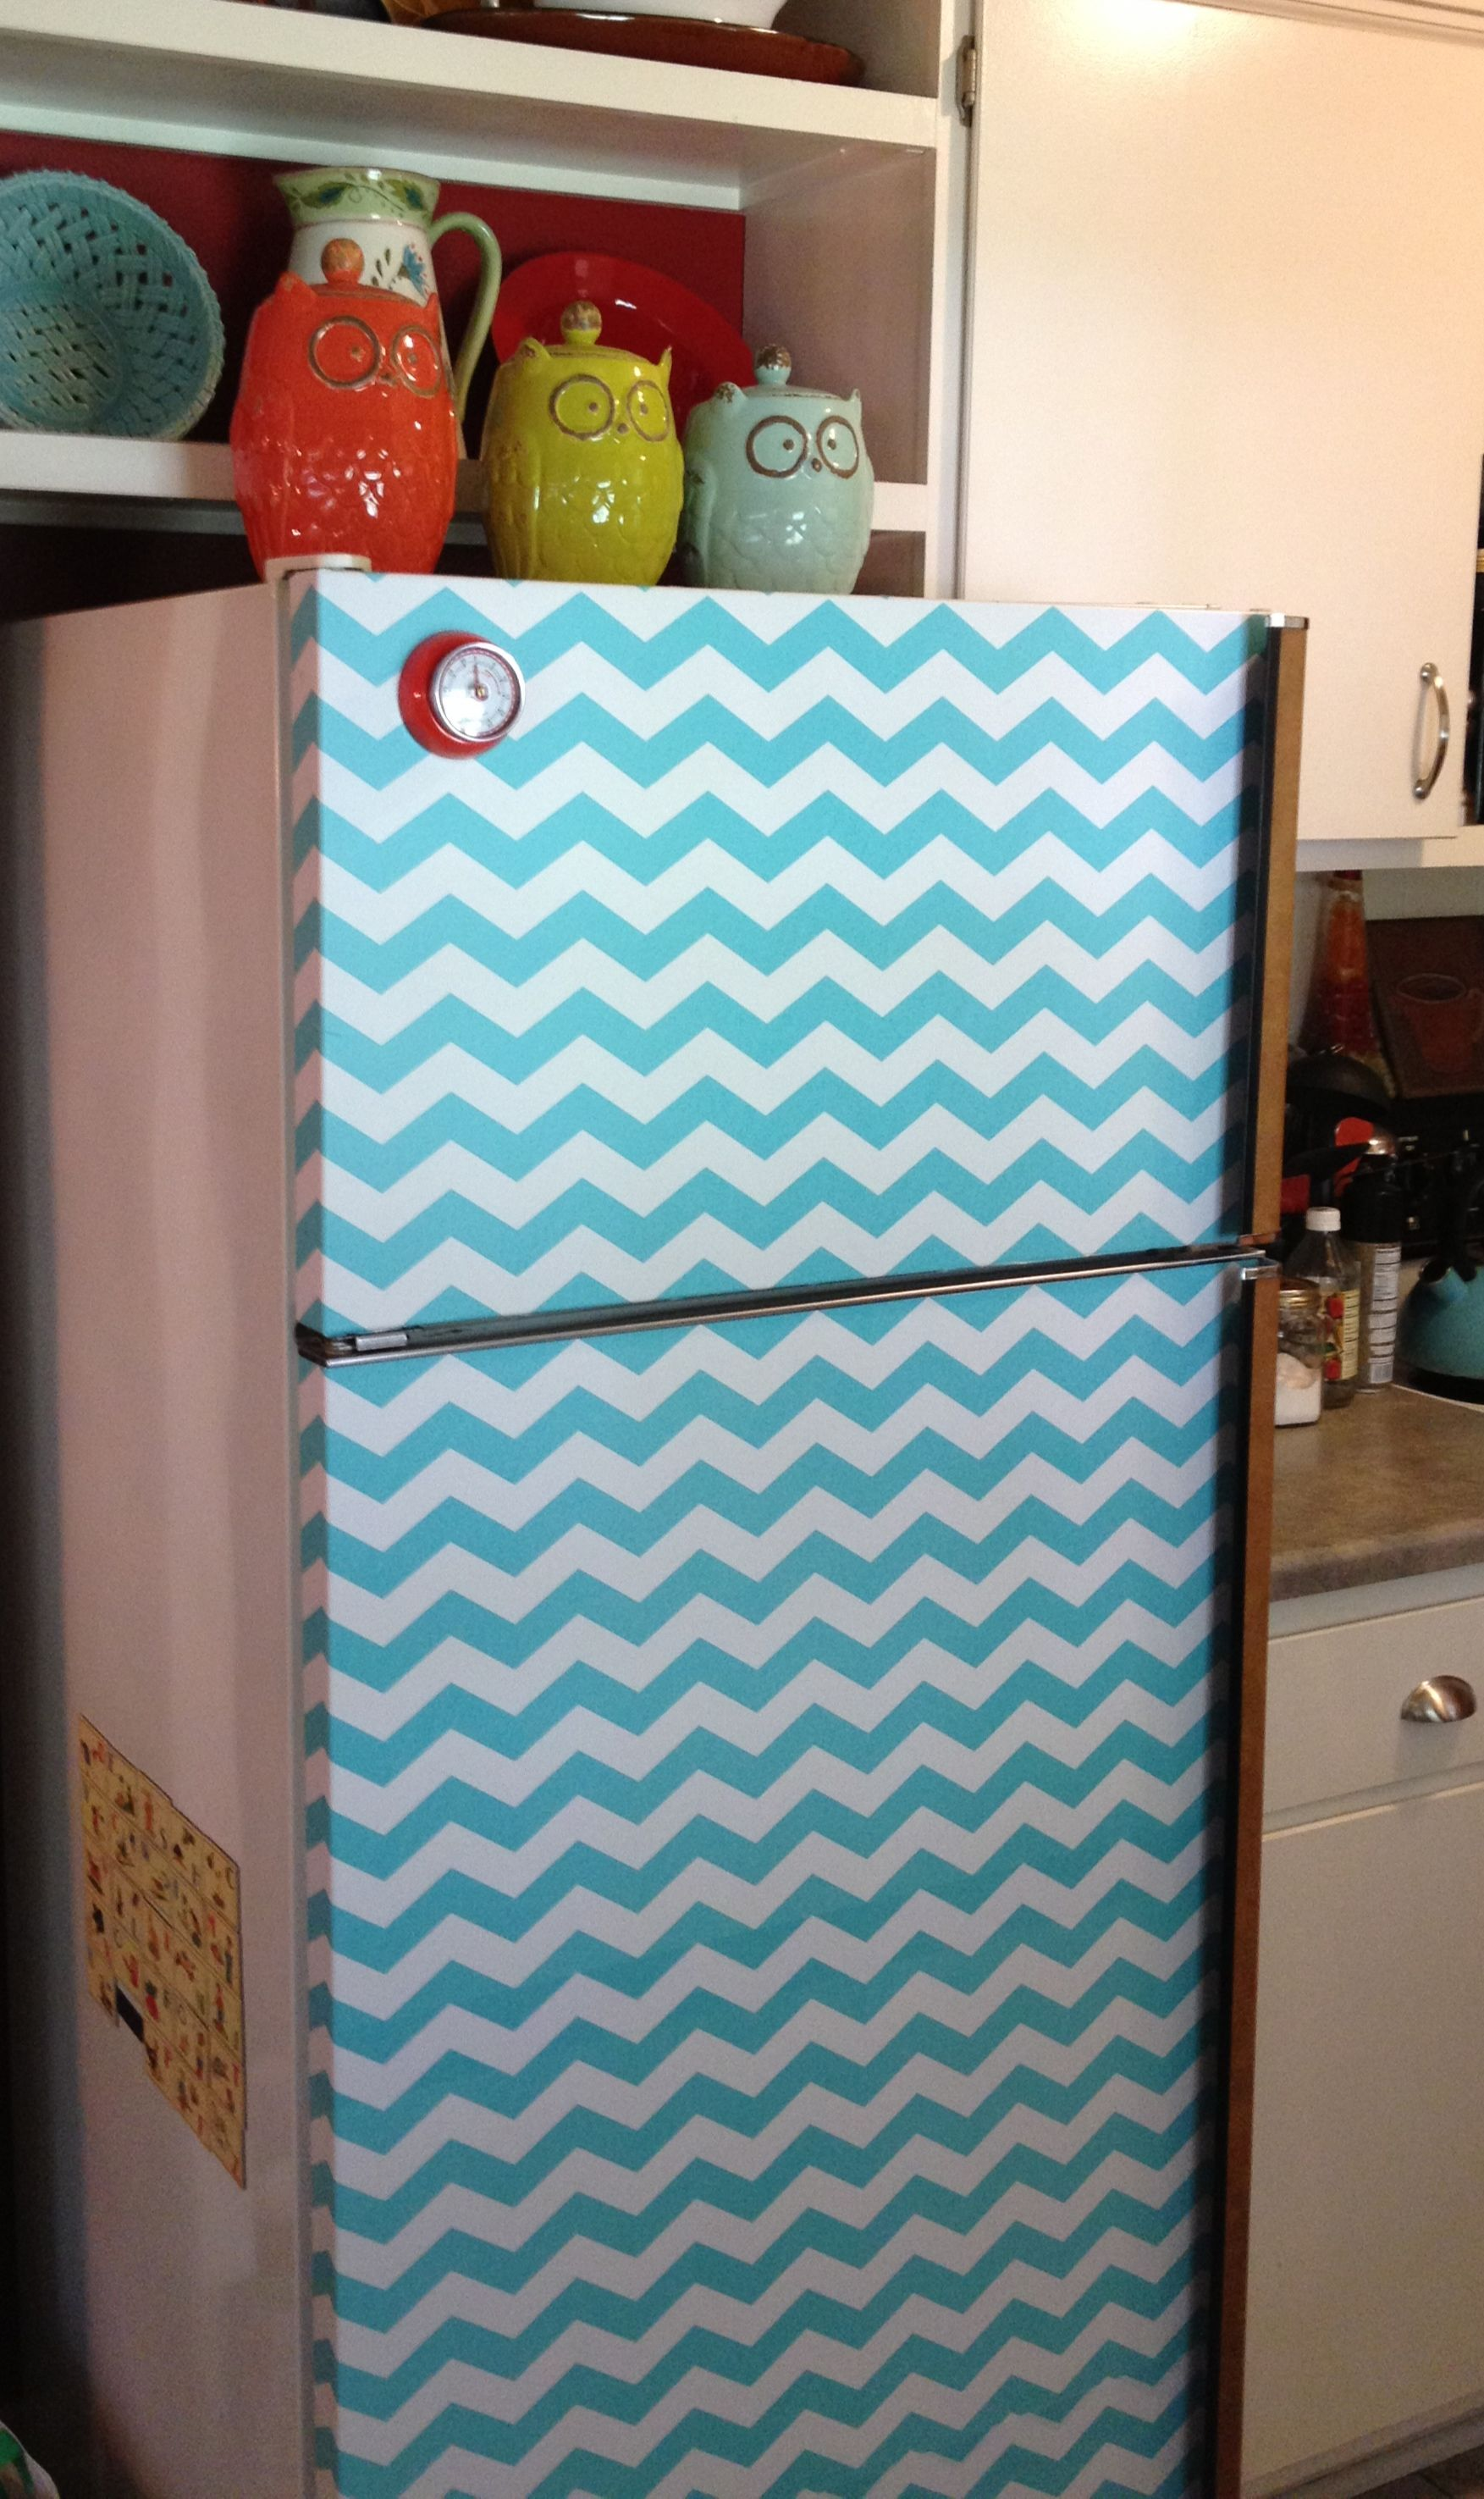 DIY refrigerator make over using self adhesive shelf liner Kitchen